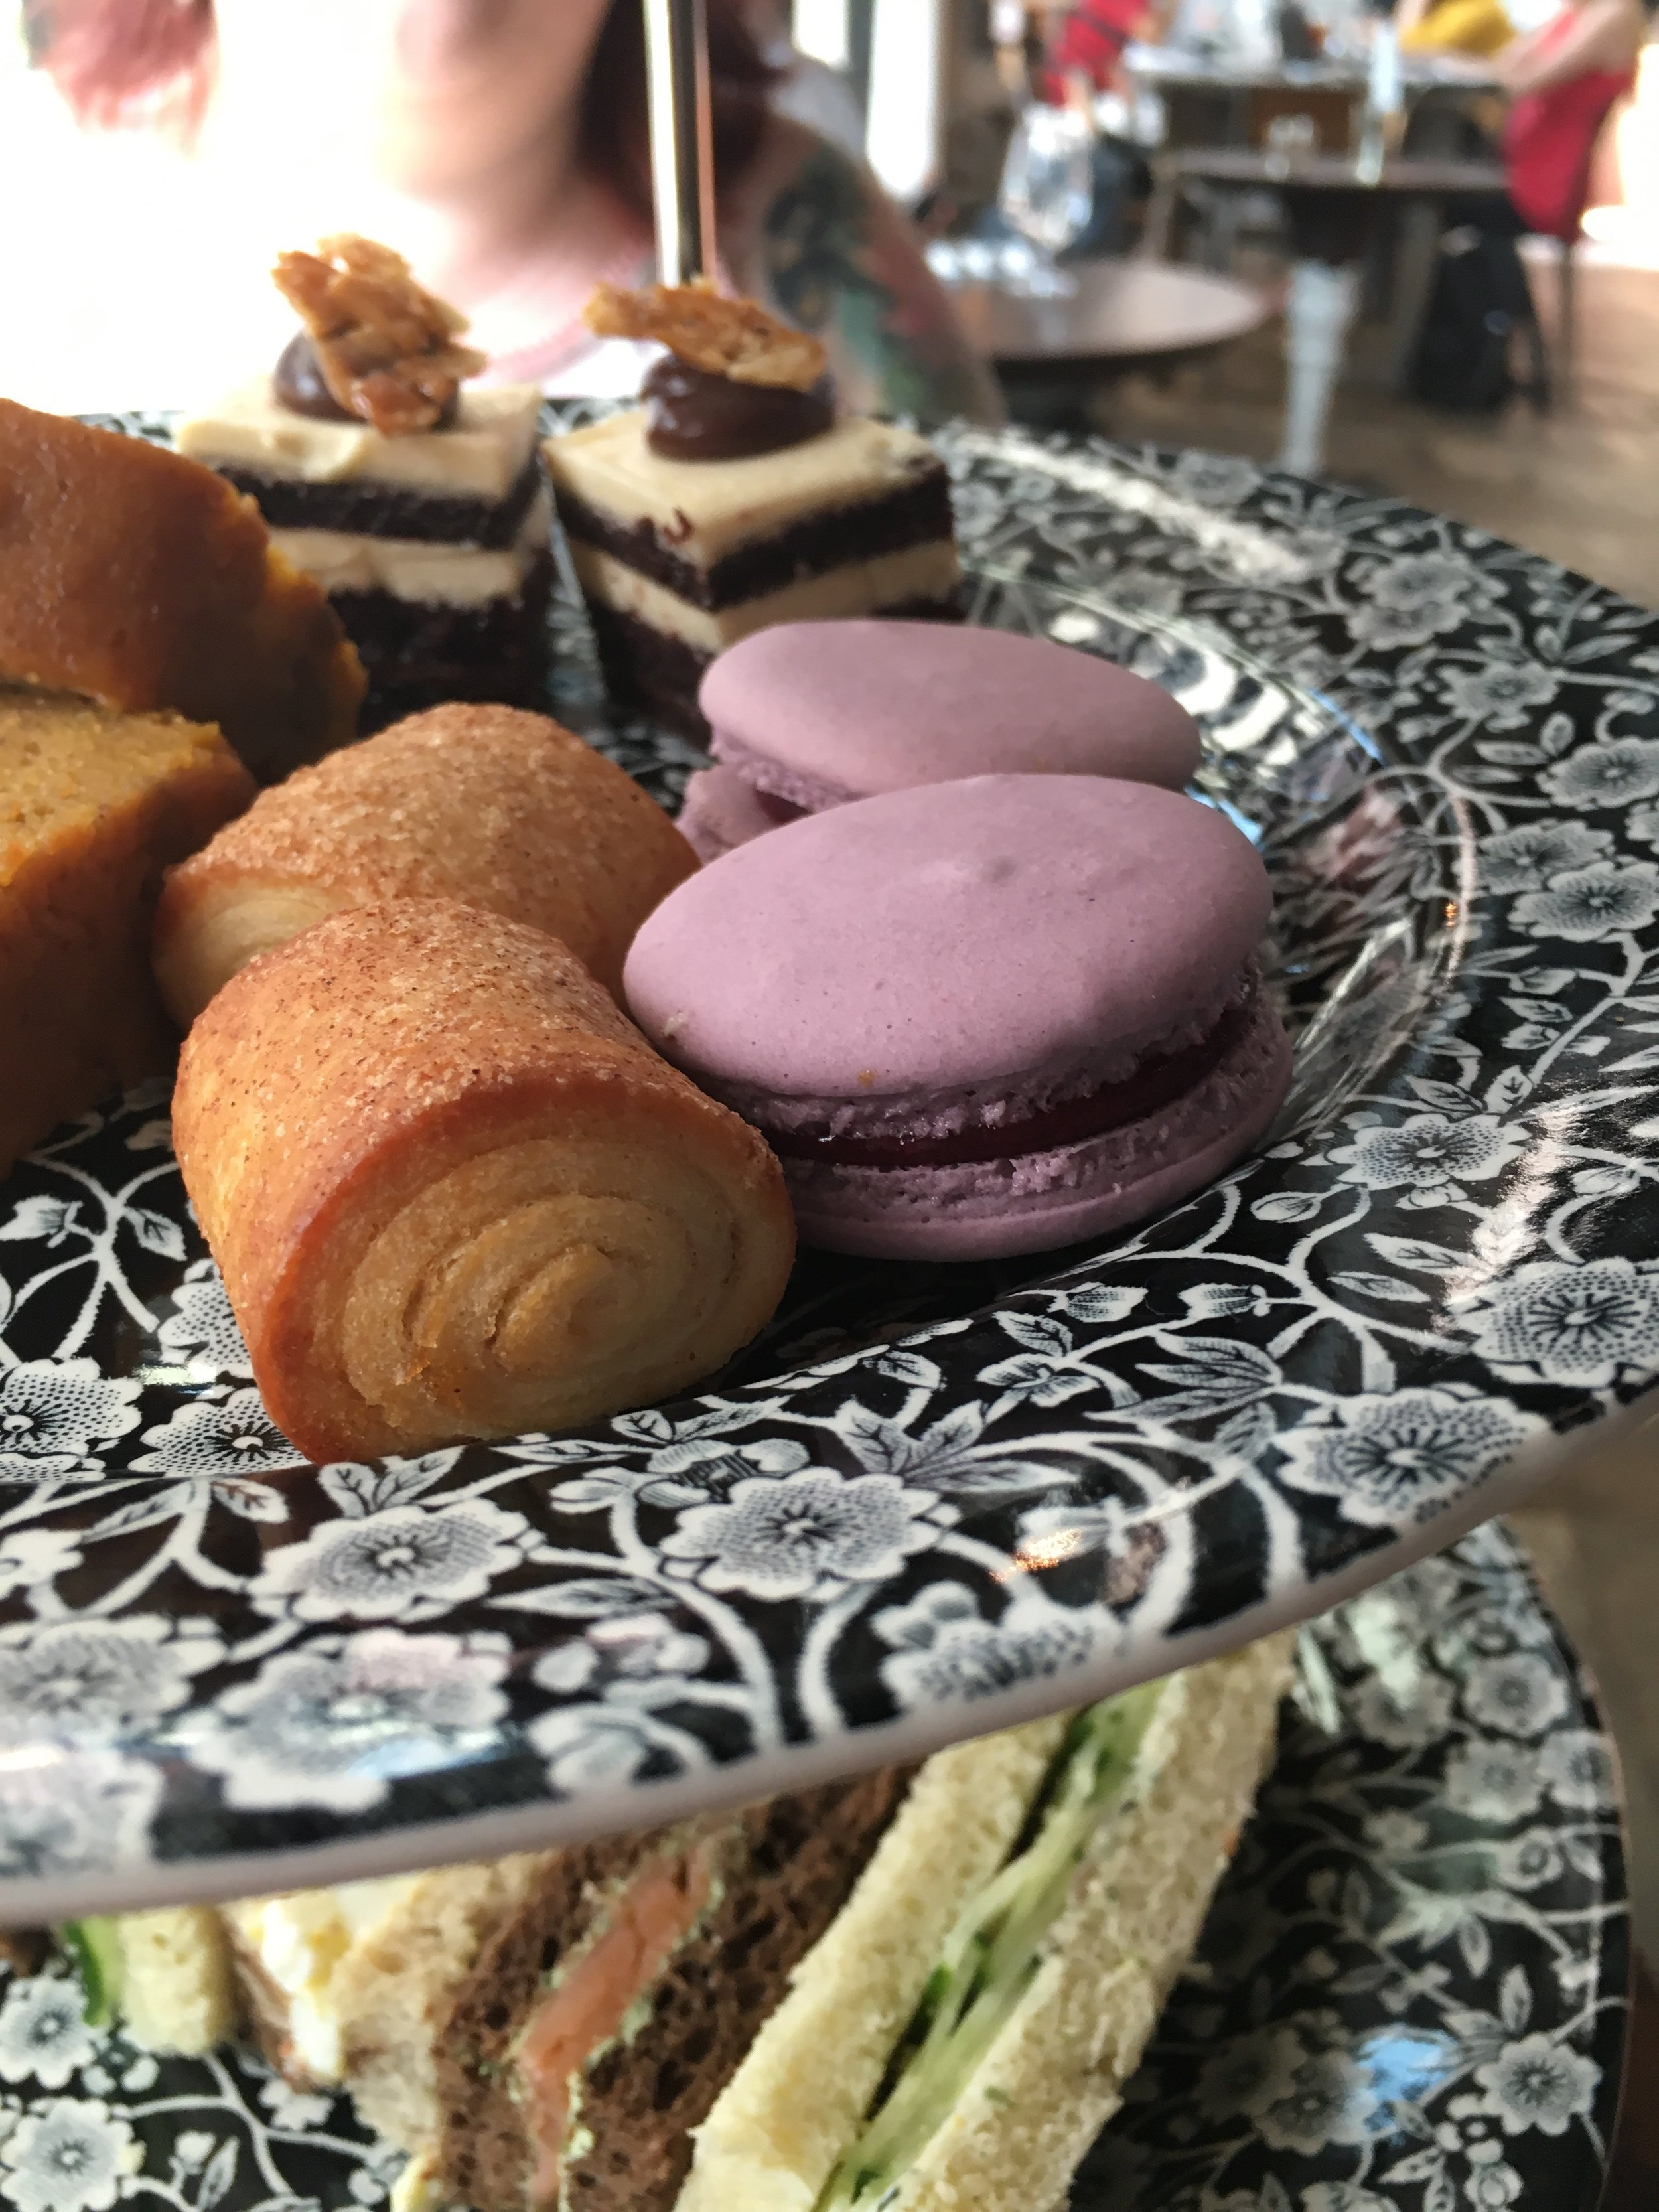 Aforementioned pretty desserts. (That macaron had some sort of berry jam filling that was off the chain!)